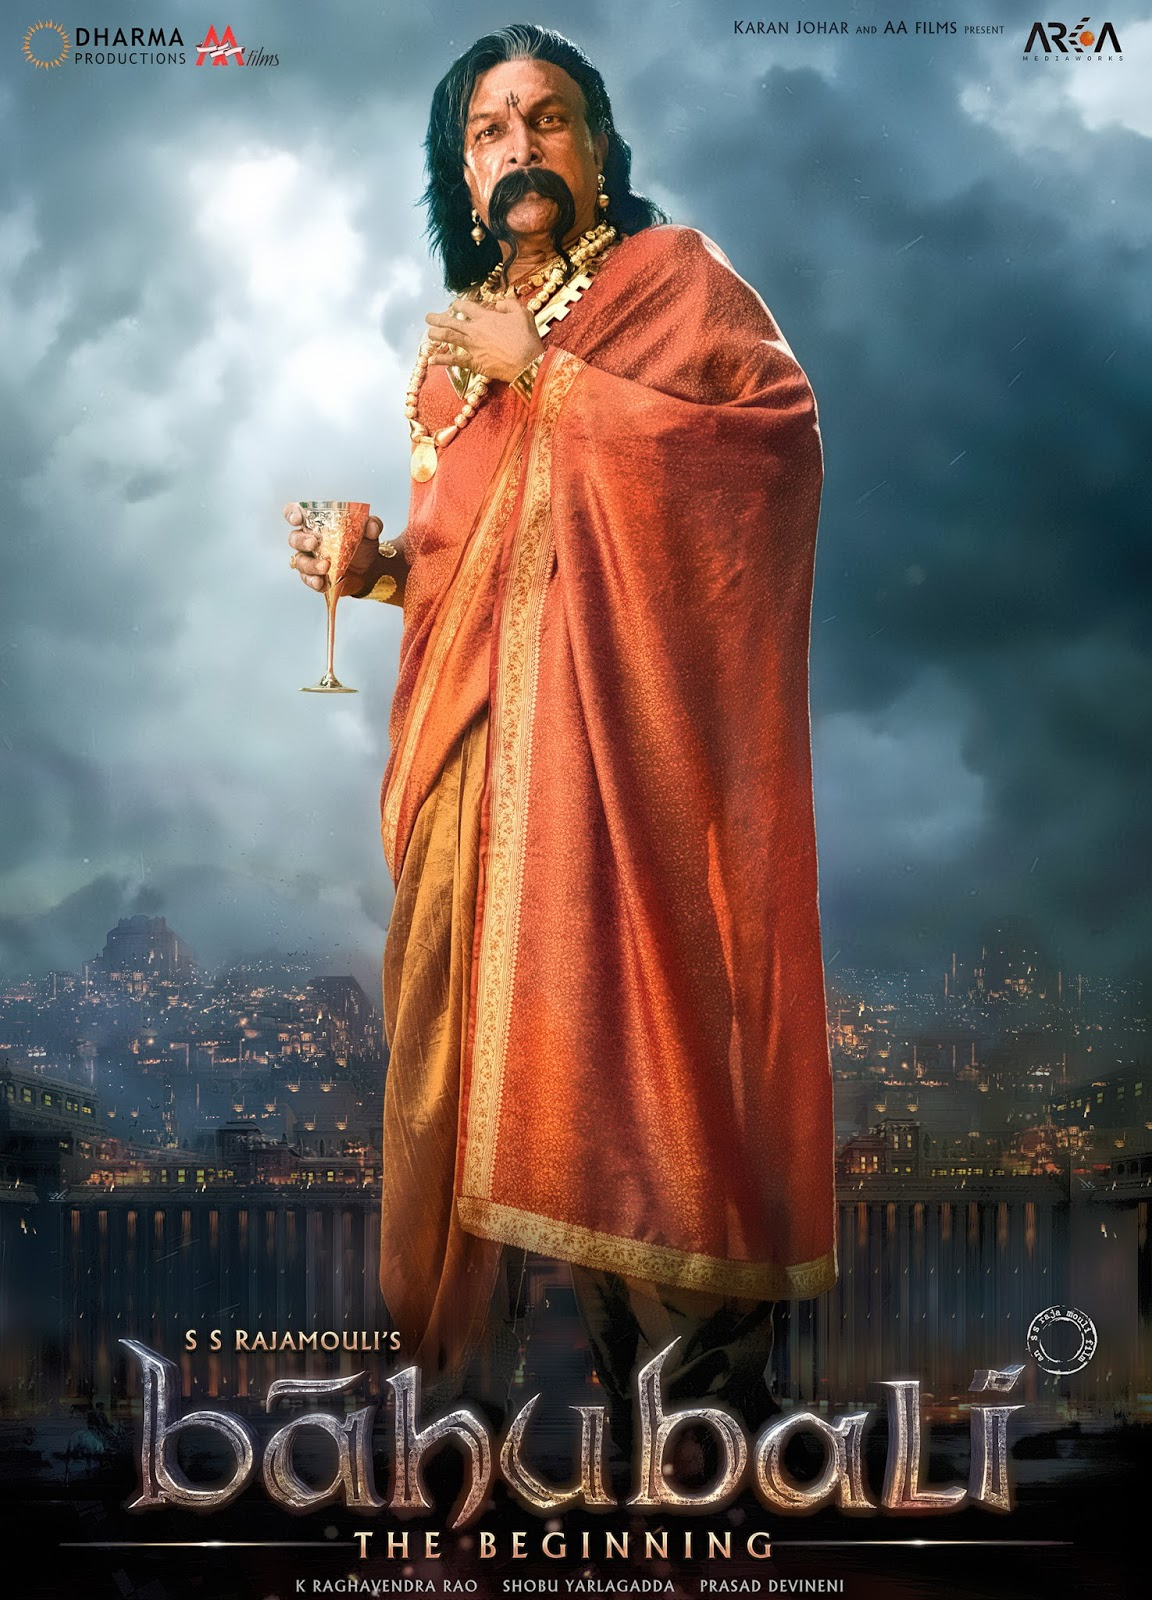 Wallpaper download bahubali - Bahubali Hd Wallpapers Bahubali Tollywood Movie Wallpapers Free Download